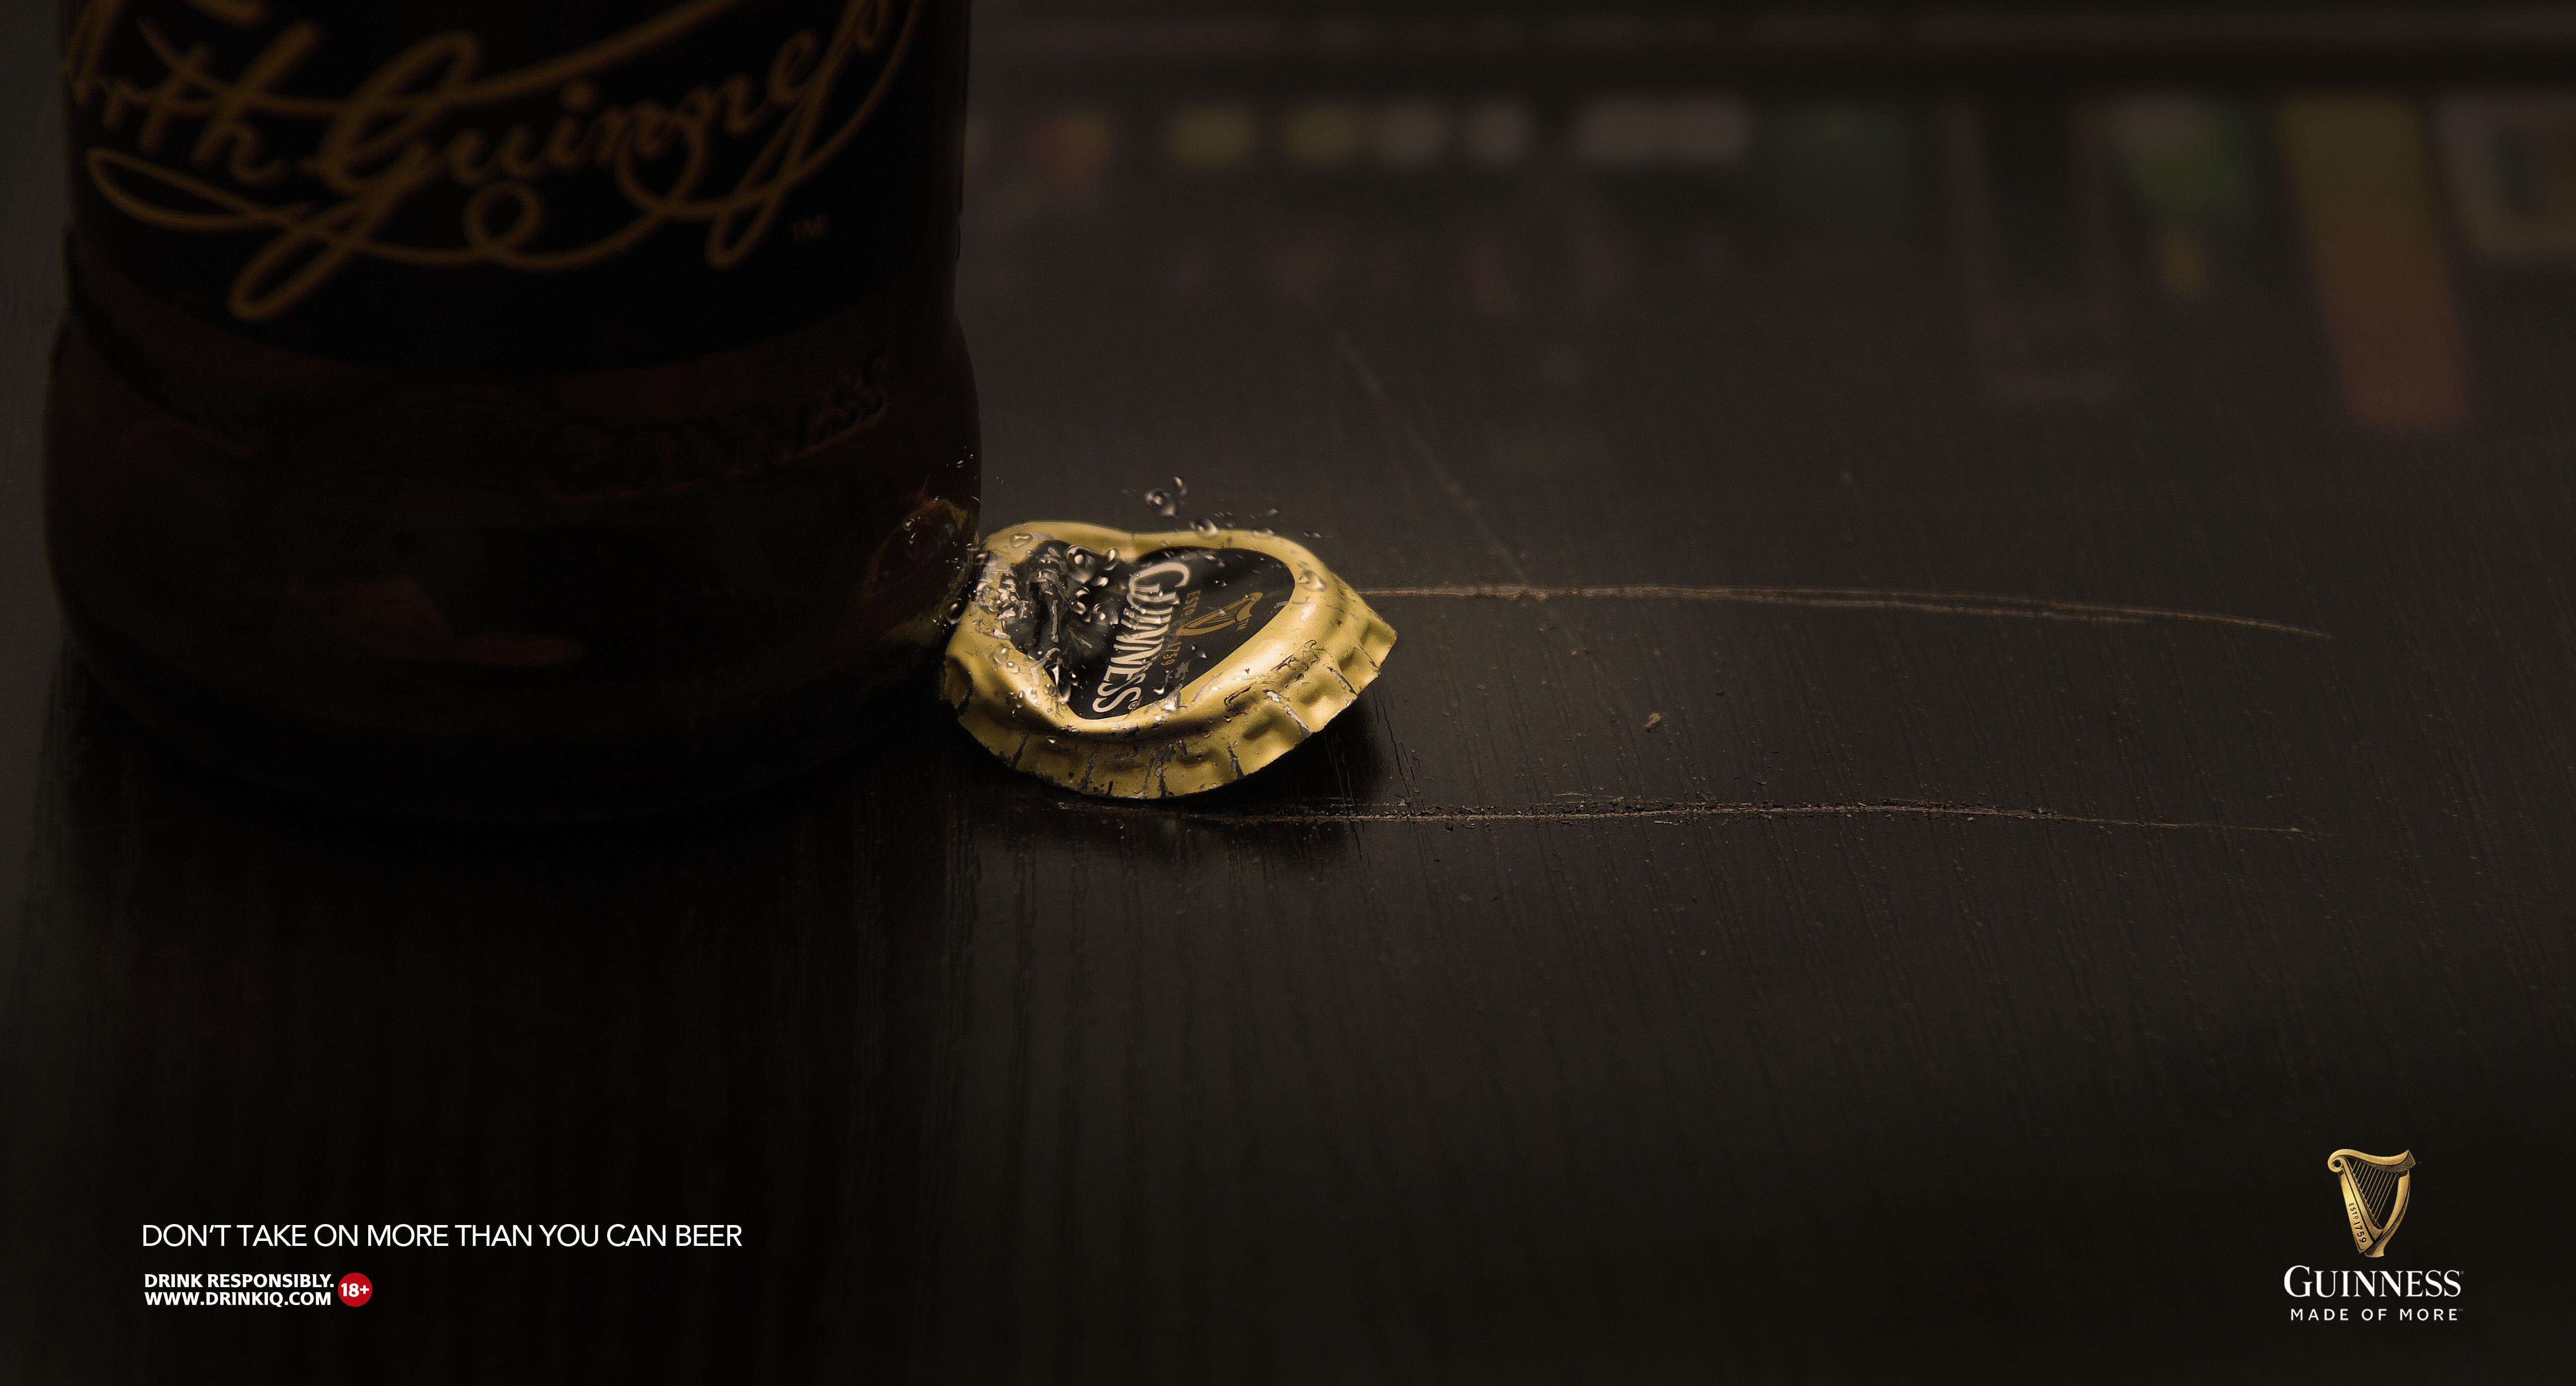 Guinness Print Ad - More Than You Can Beer, 2